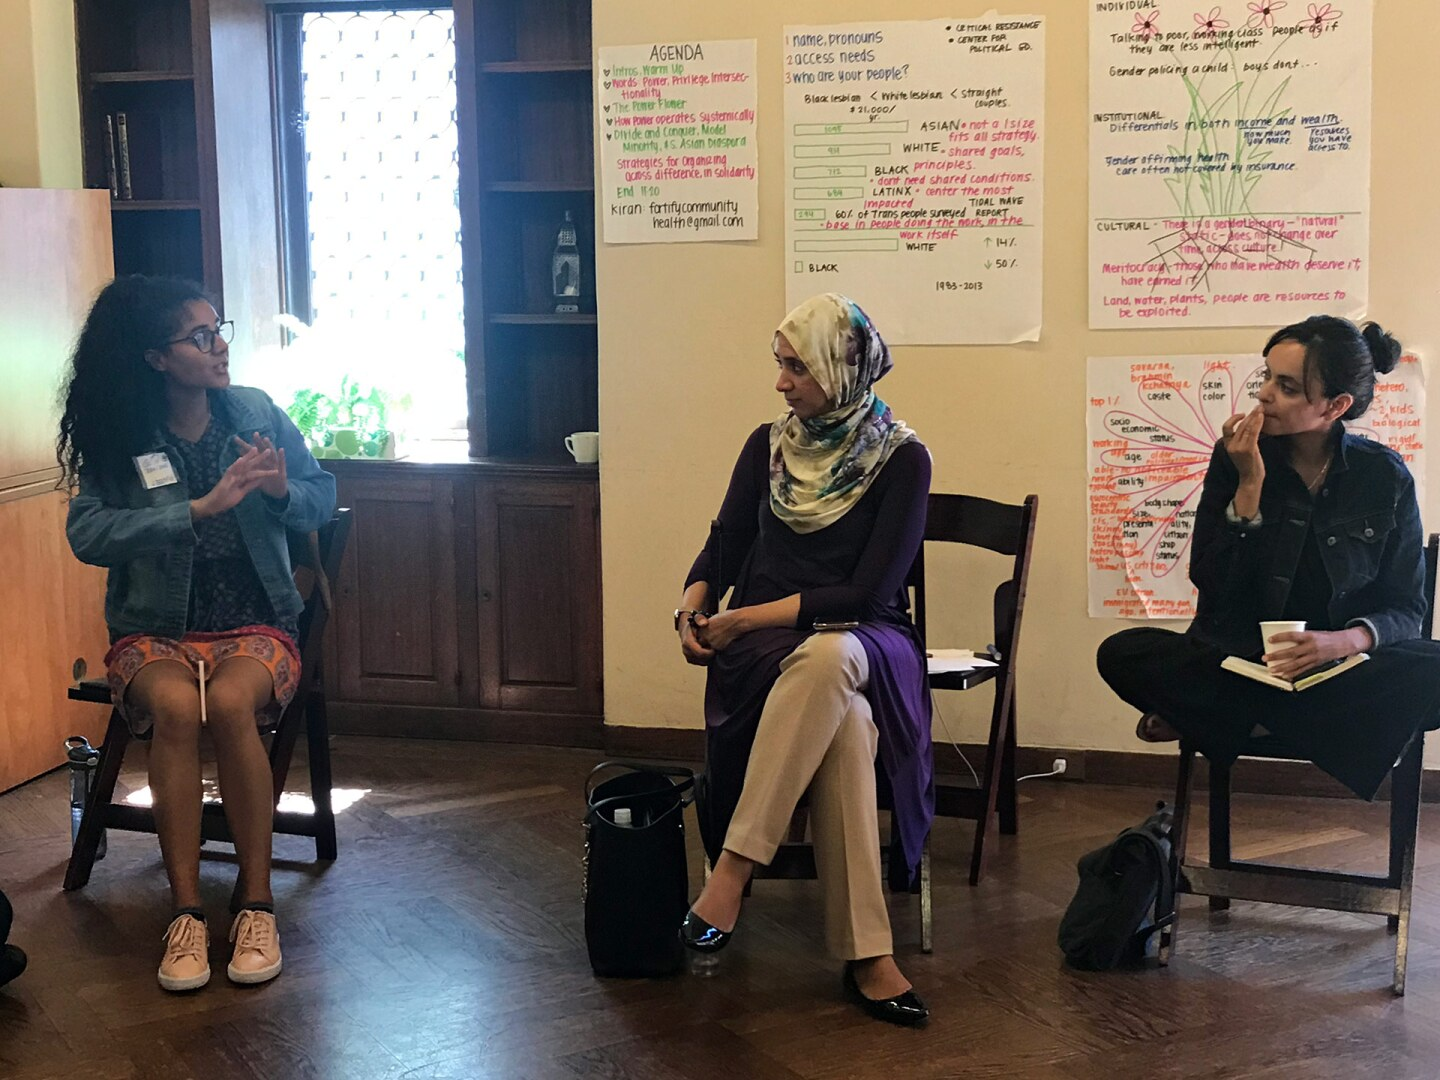 Three women sit together in discussion